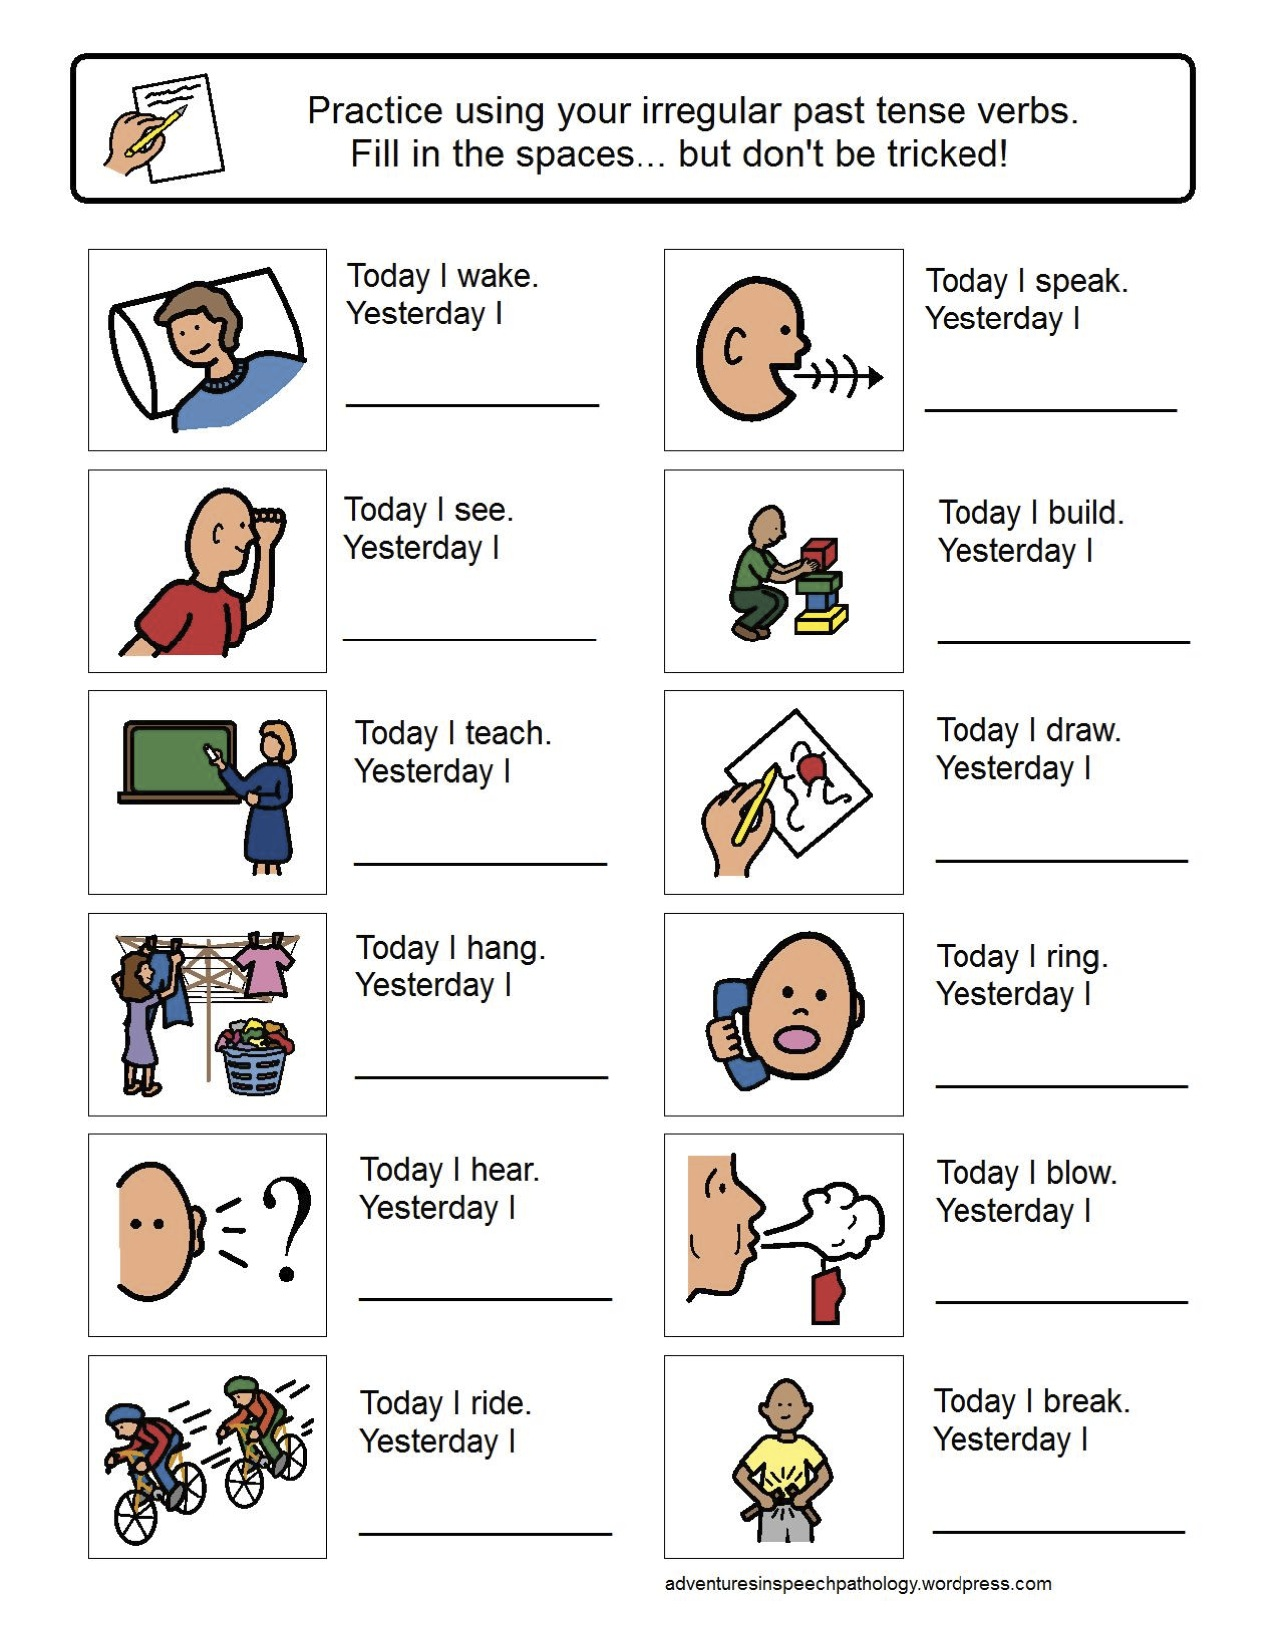 35 Best Irregular Past Tense Verbs Images